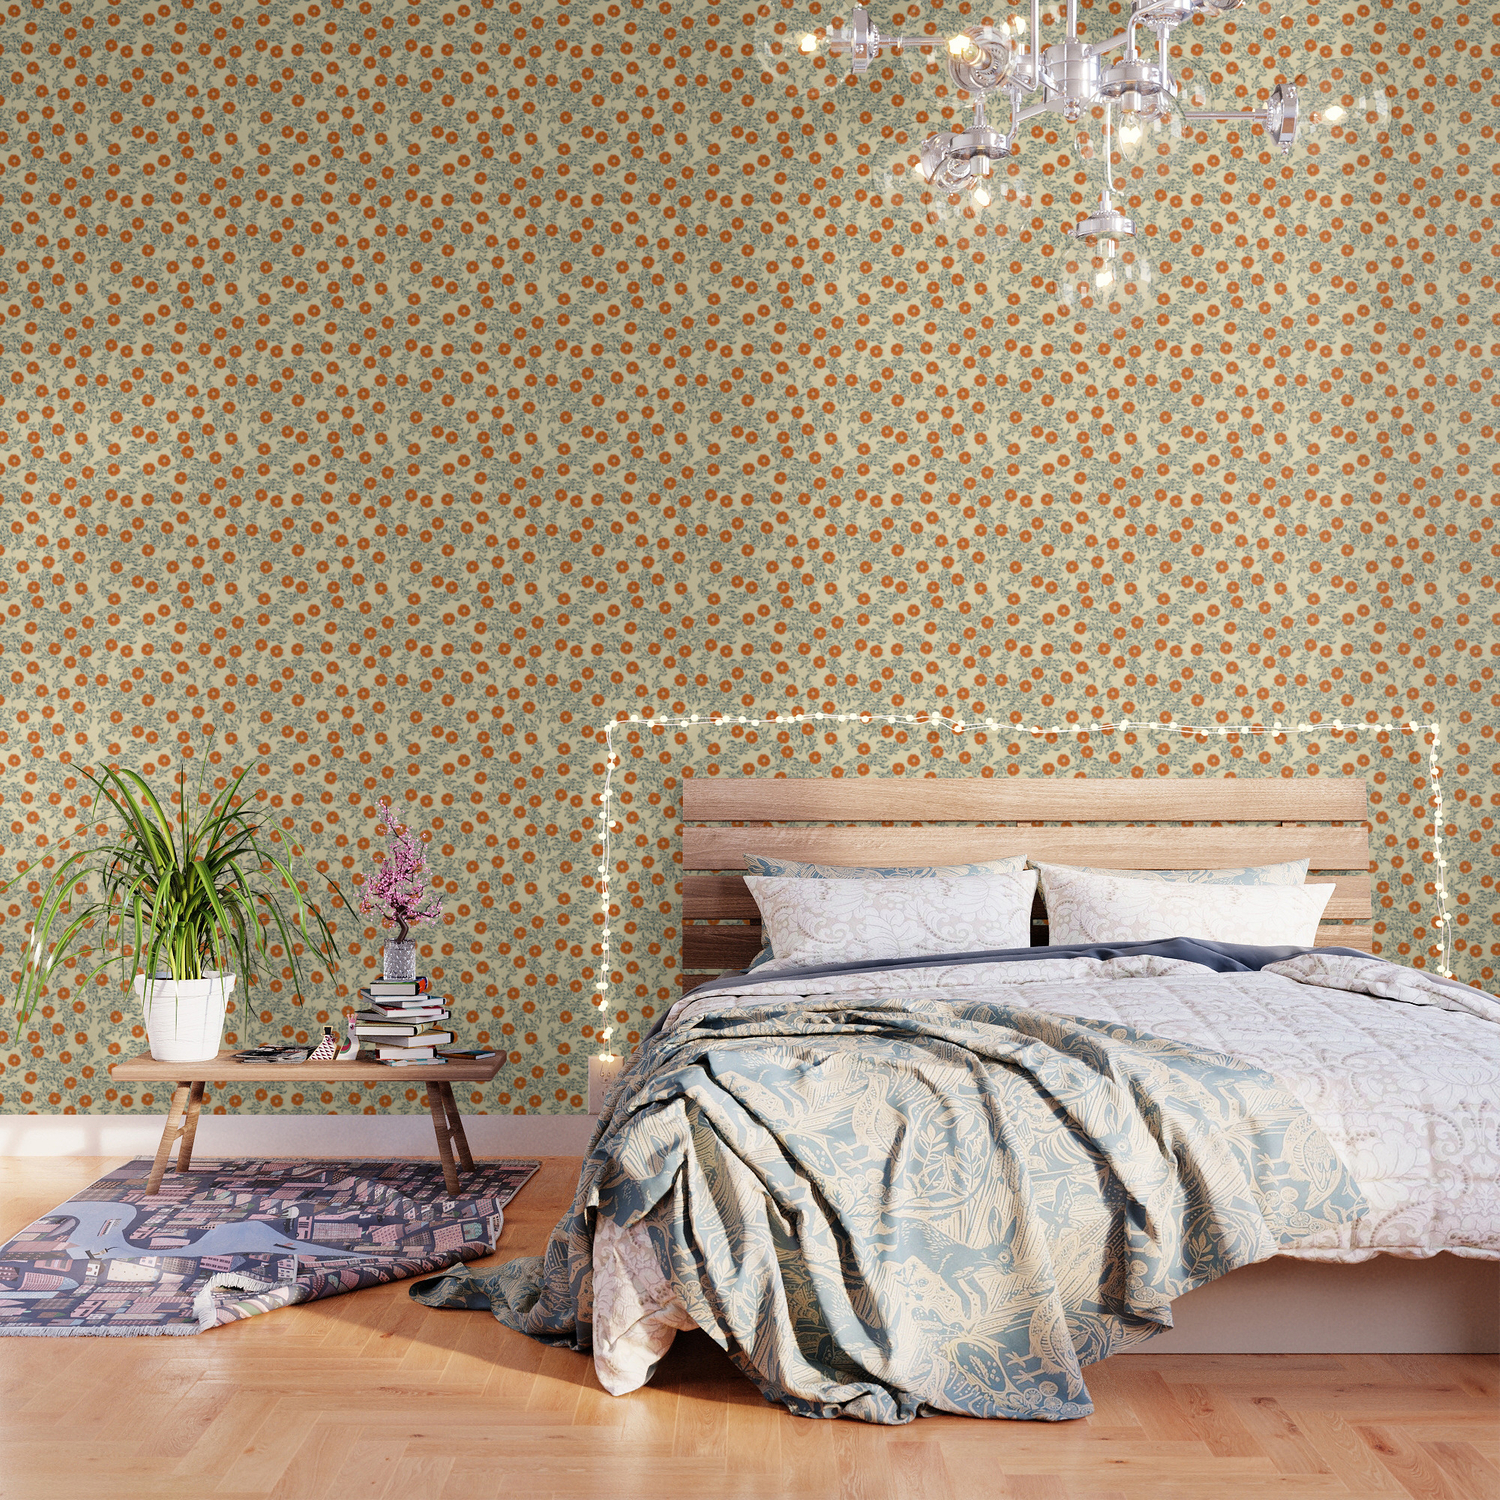 60s Floral Wallpaper By Themaxwells Society6